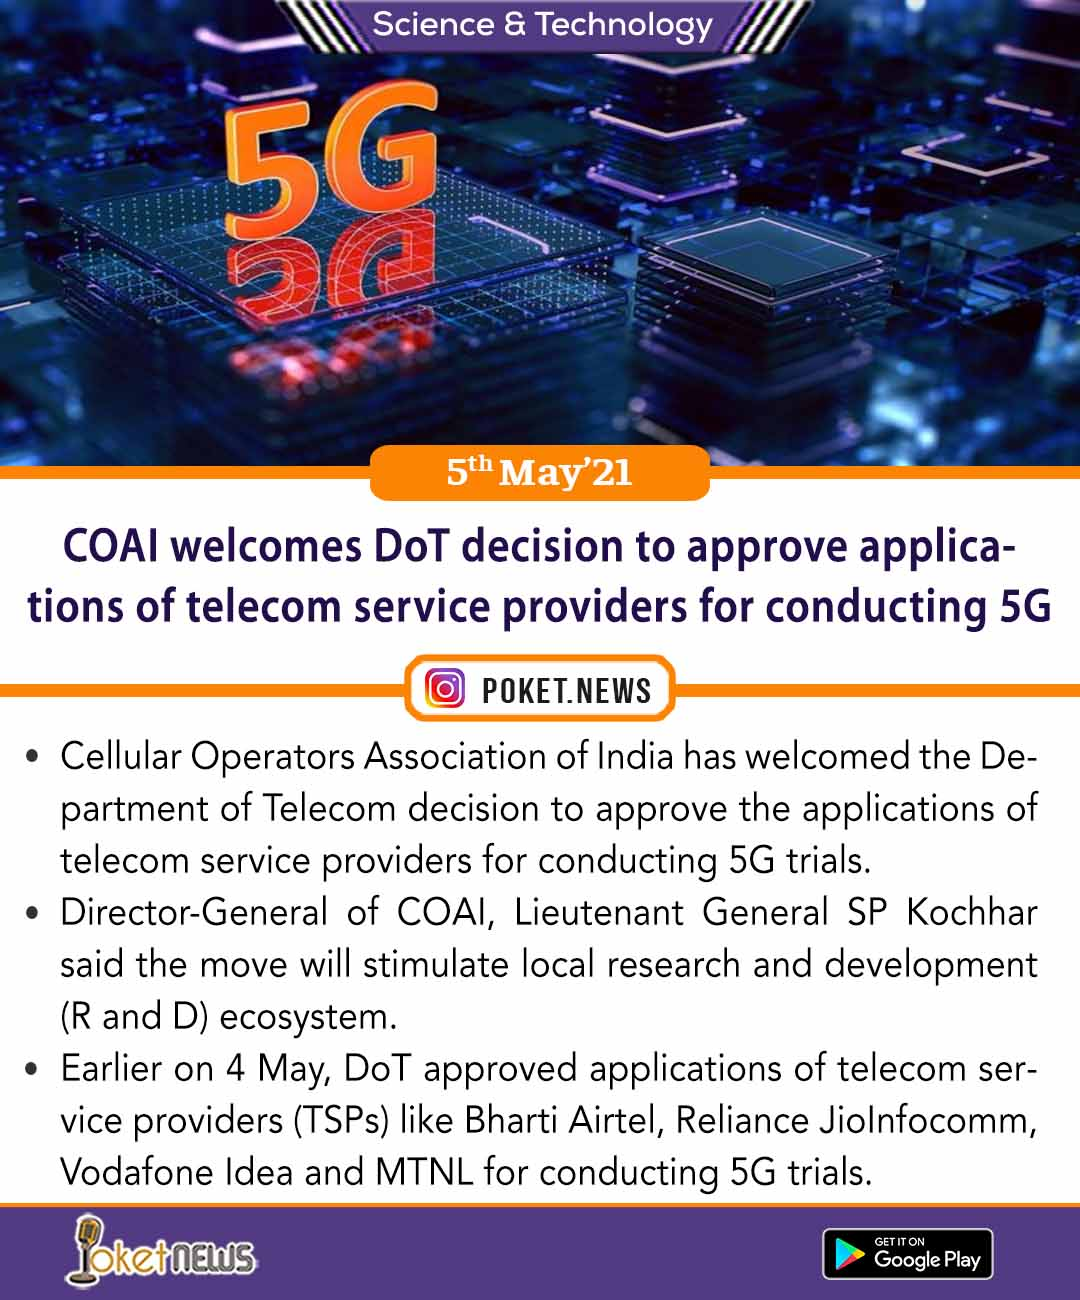 COAI welcomes DoT decision to approve applications of telecom service providers for conducting 5G trials